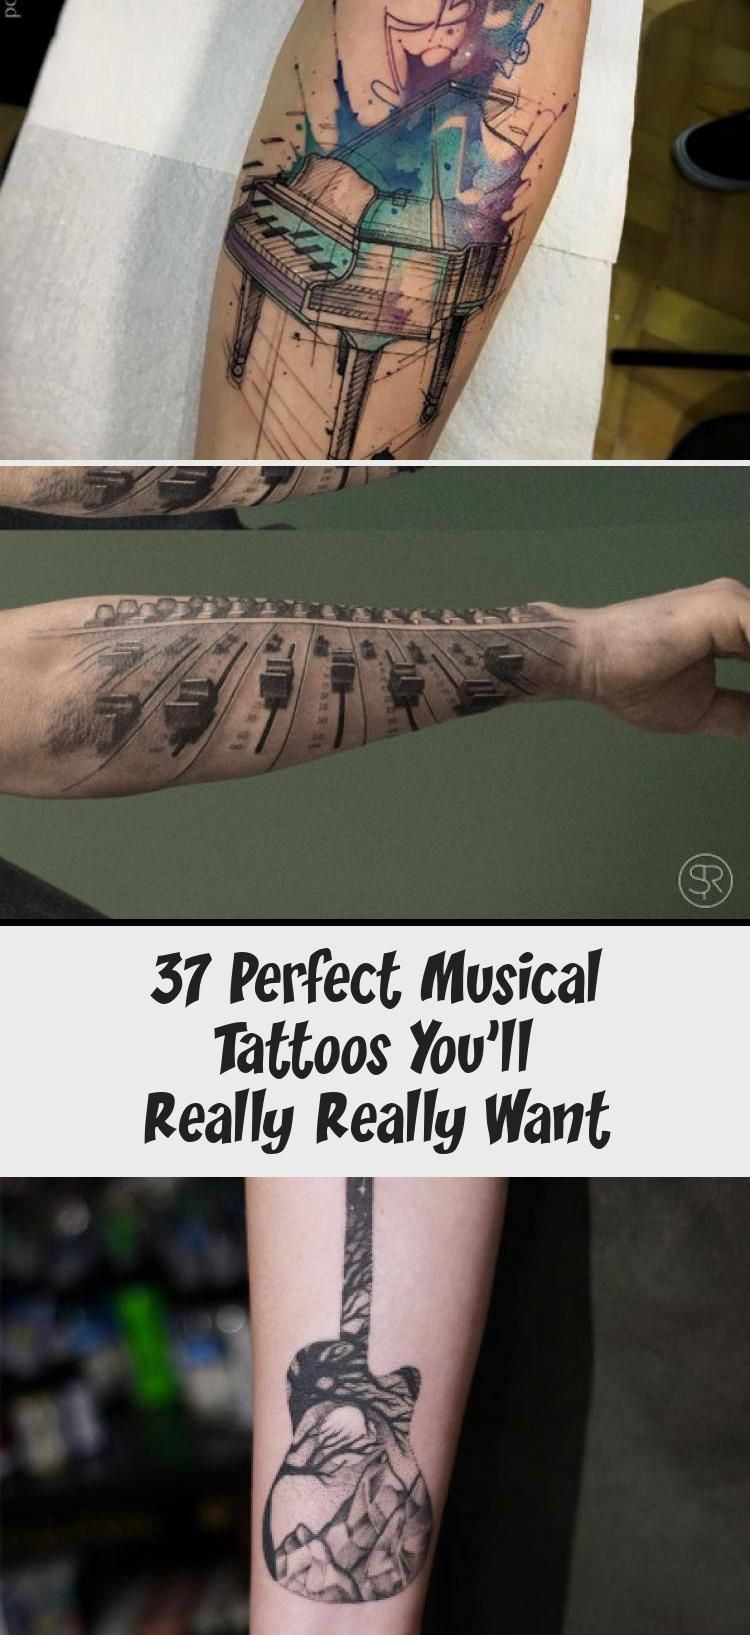 37 Perfect Musical Tattoos You'll Really Really Want – TattooBlend #tattoodesignsNeck #Skulltattoodesigns #tattoodesignsRibs #Hearttattood